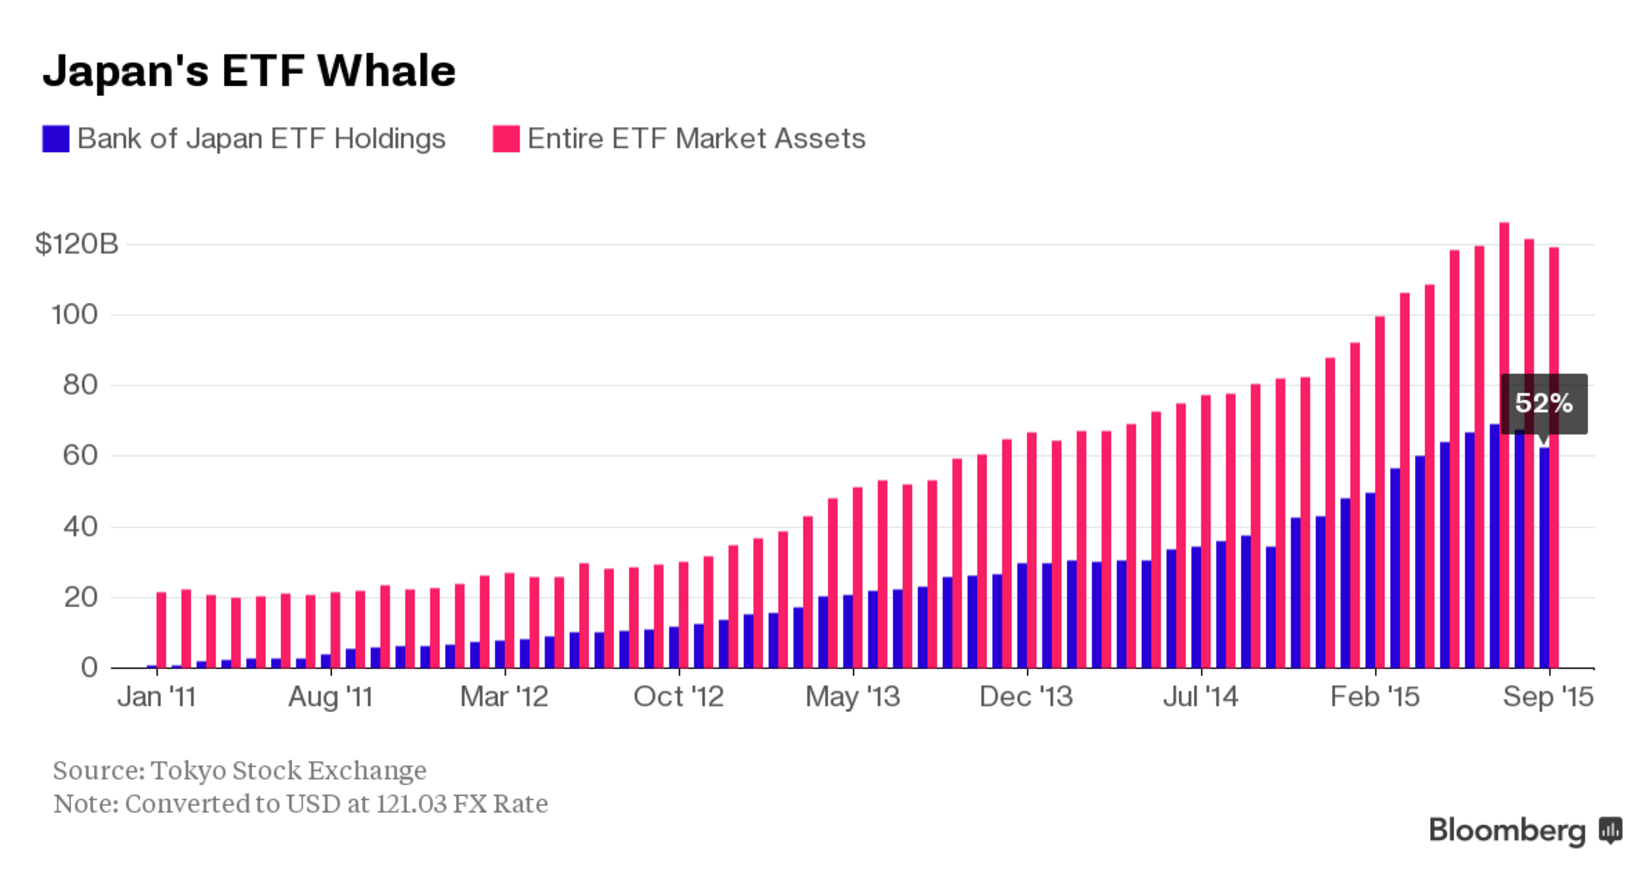 Japan's ETF Market - BoJ's holdings Source: Bloomberg